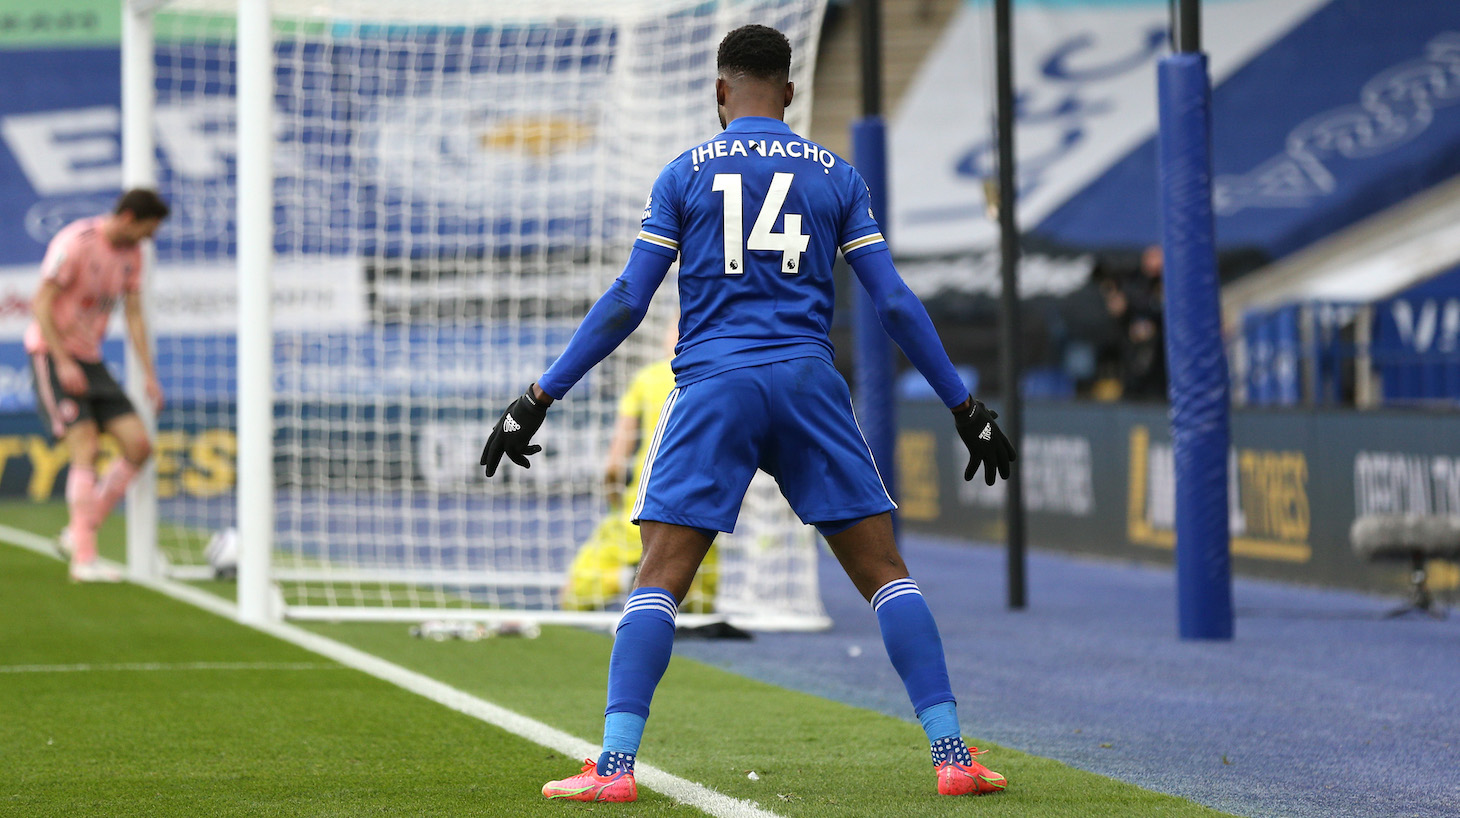 Kelechi Iheanacho of Leicester City celebrates after scoring their side's first goal during the Premier League match between Leicester City and Sheffield United at The King Power Stadium on March 14, 2021 in Leicester, England.